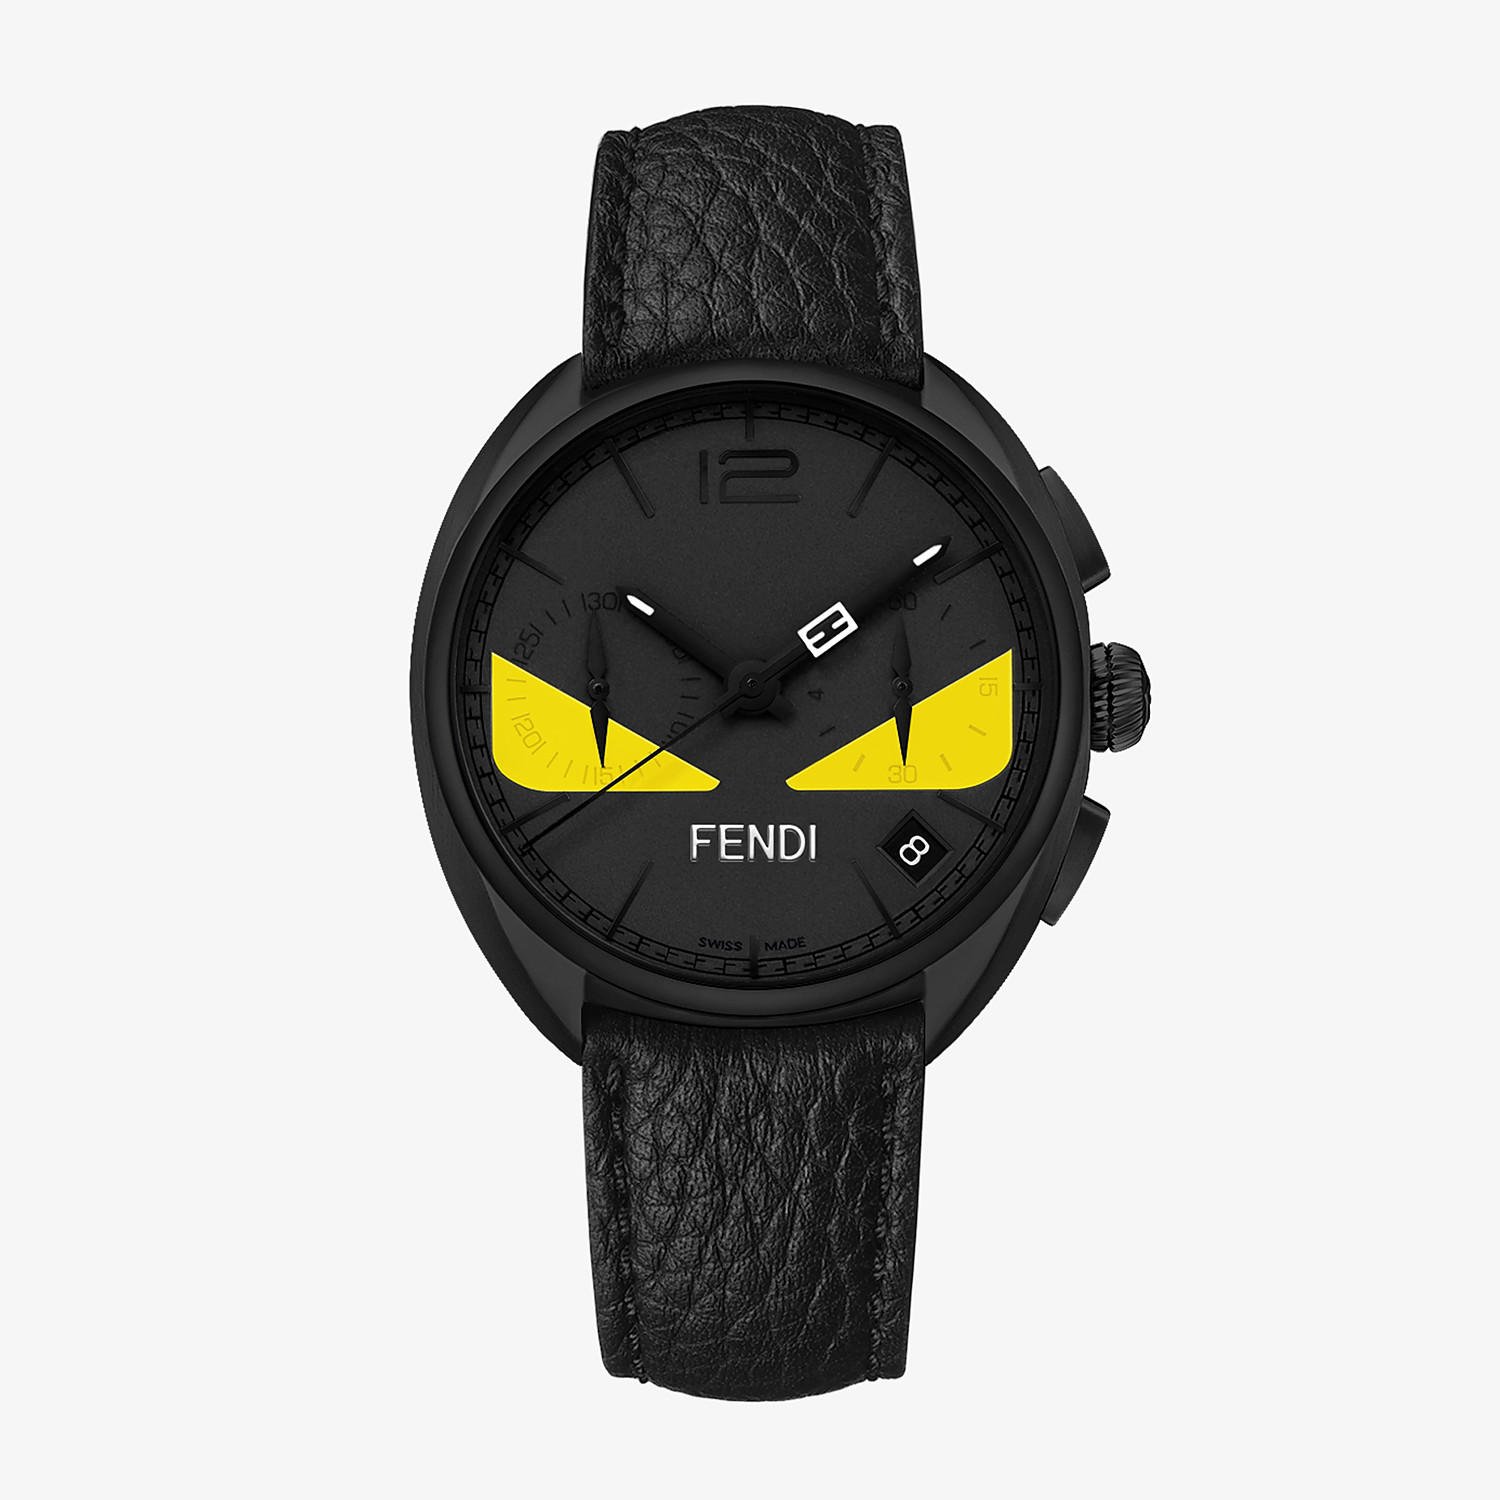 FENDI MOMENTO FENDI BUGS - 40 mm - Chronograph watch with strap - view 1 detail